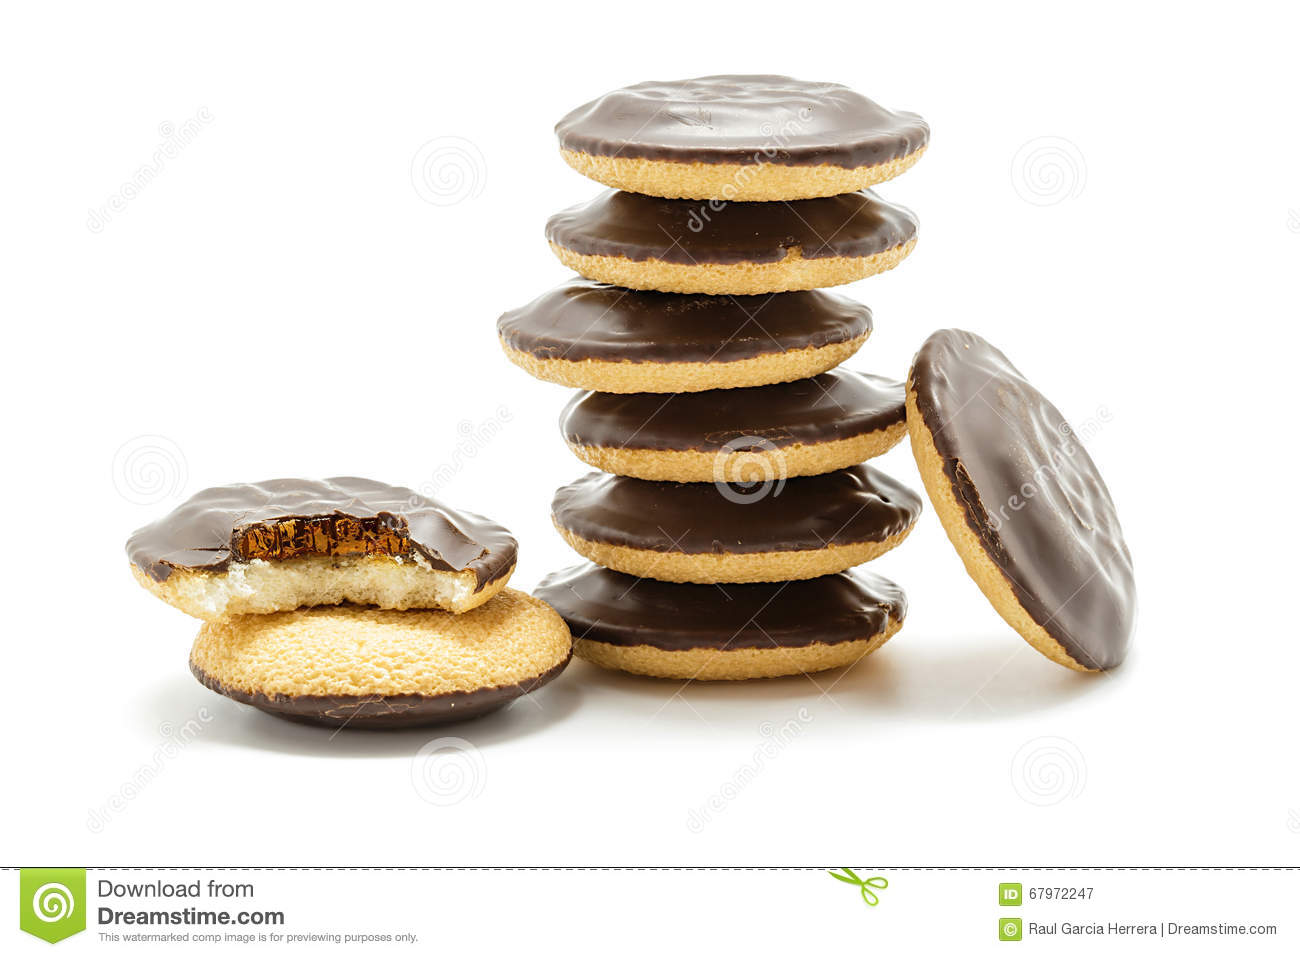 Are Jaffa Cakes Cookies